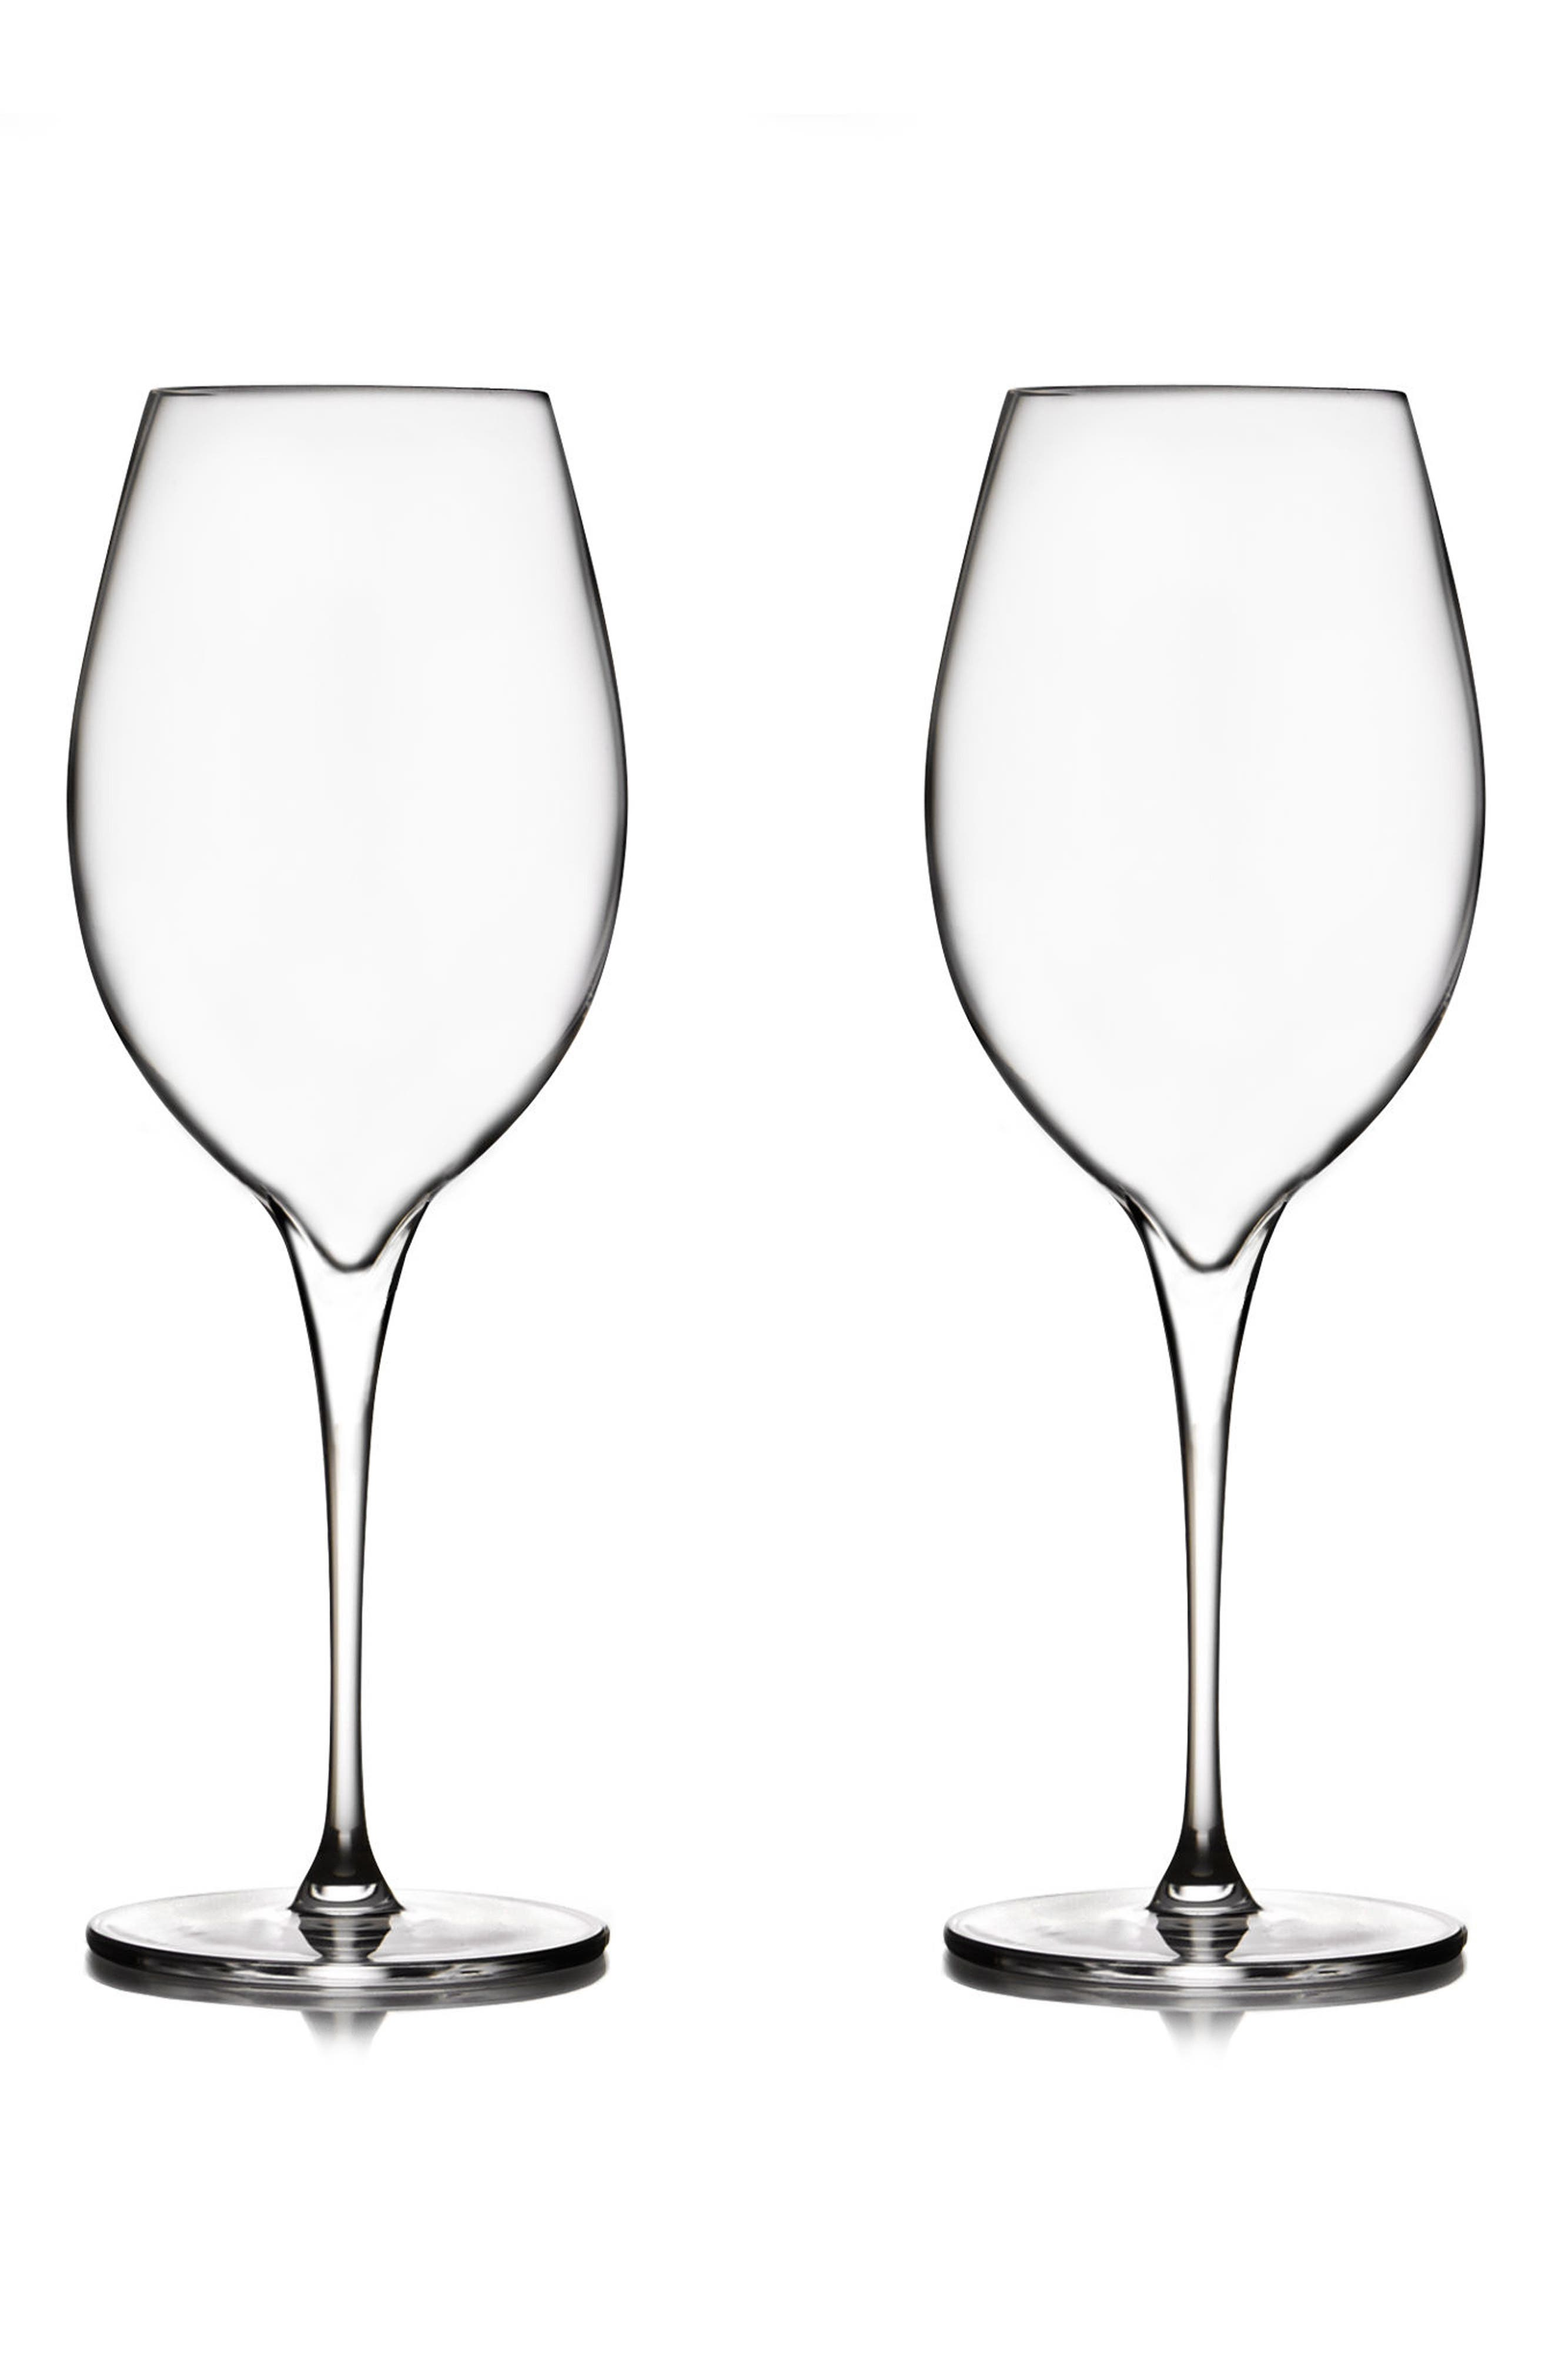 Vie Set of 2 Pinot Grigio Glasses,                             Main thumbnail 1, color,                             Clear